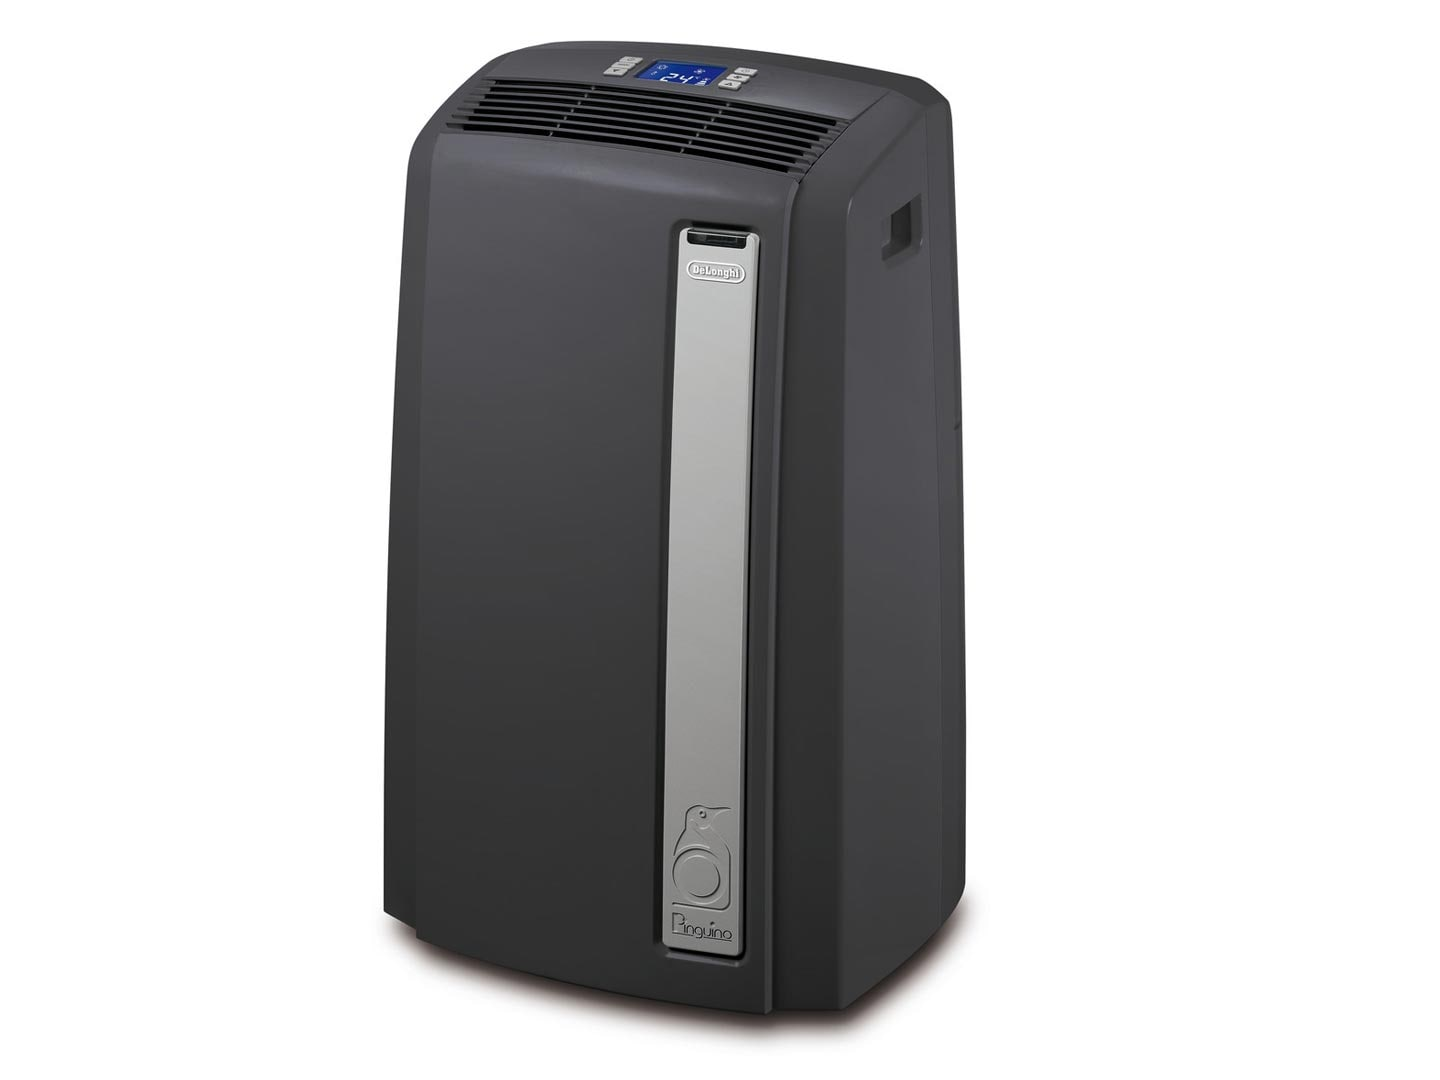 Pinguino portable air conditioner an140hpecb delonghi ca pacan140hpecb zoom undefined undefined enlarge enlarge pacan140hpecb pinguino portable air conditioner fandeluxe Choice Image